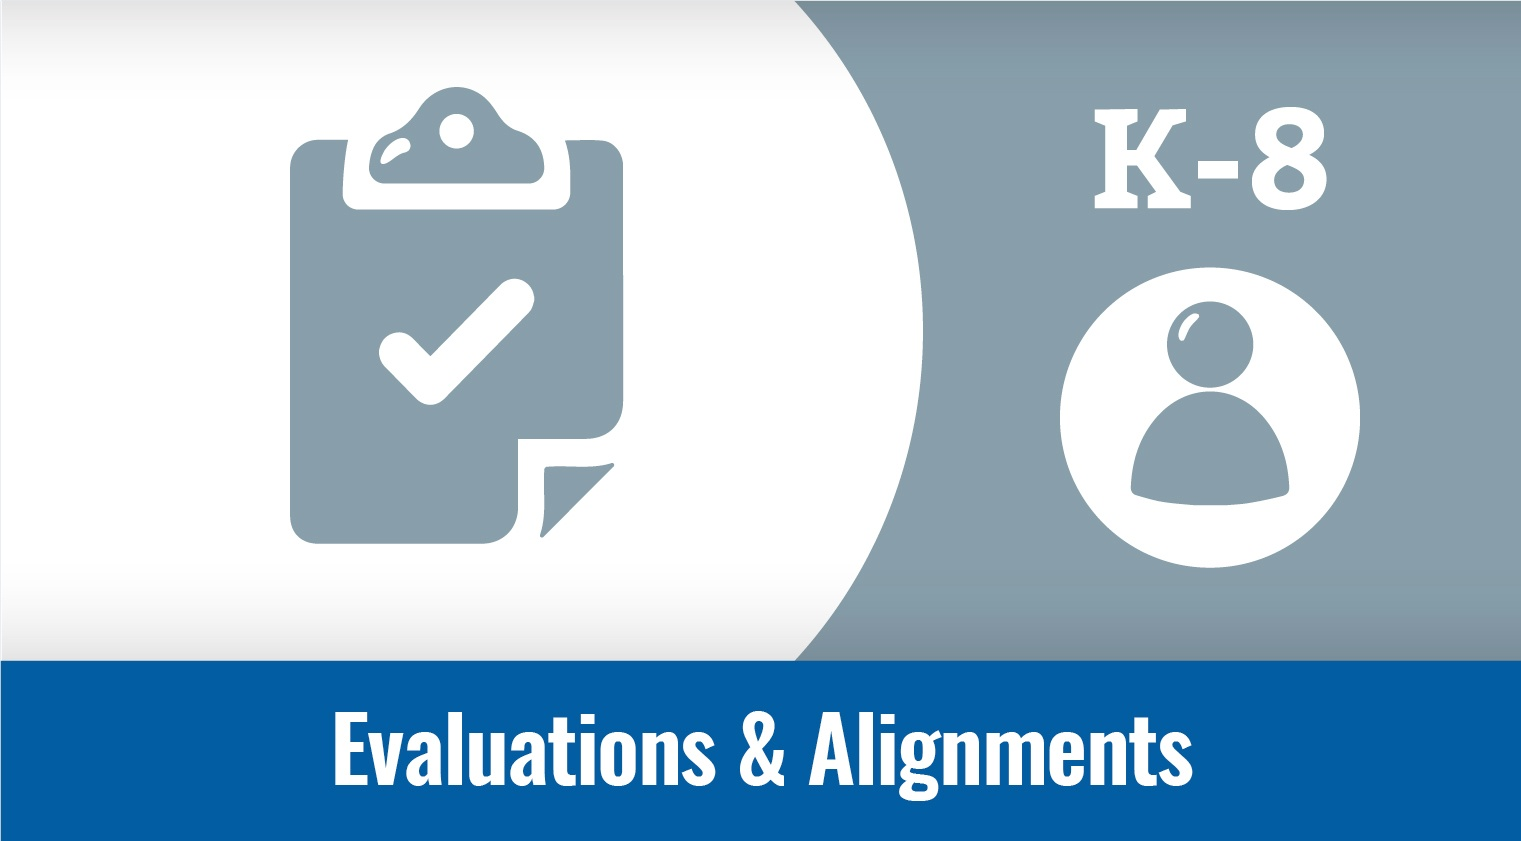 Evaluations & Alignments